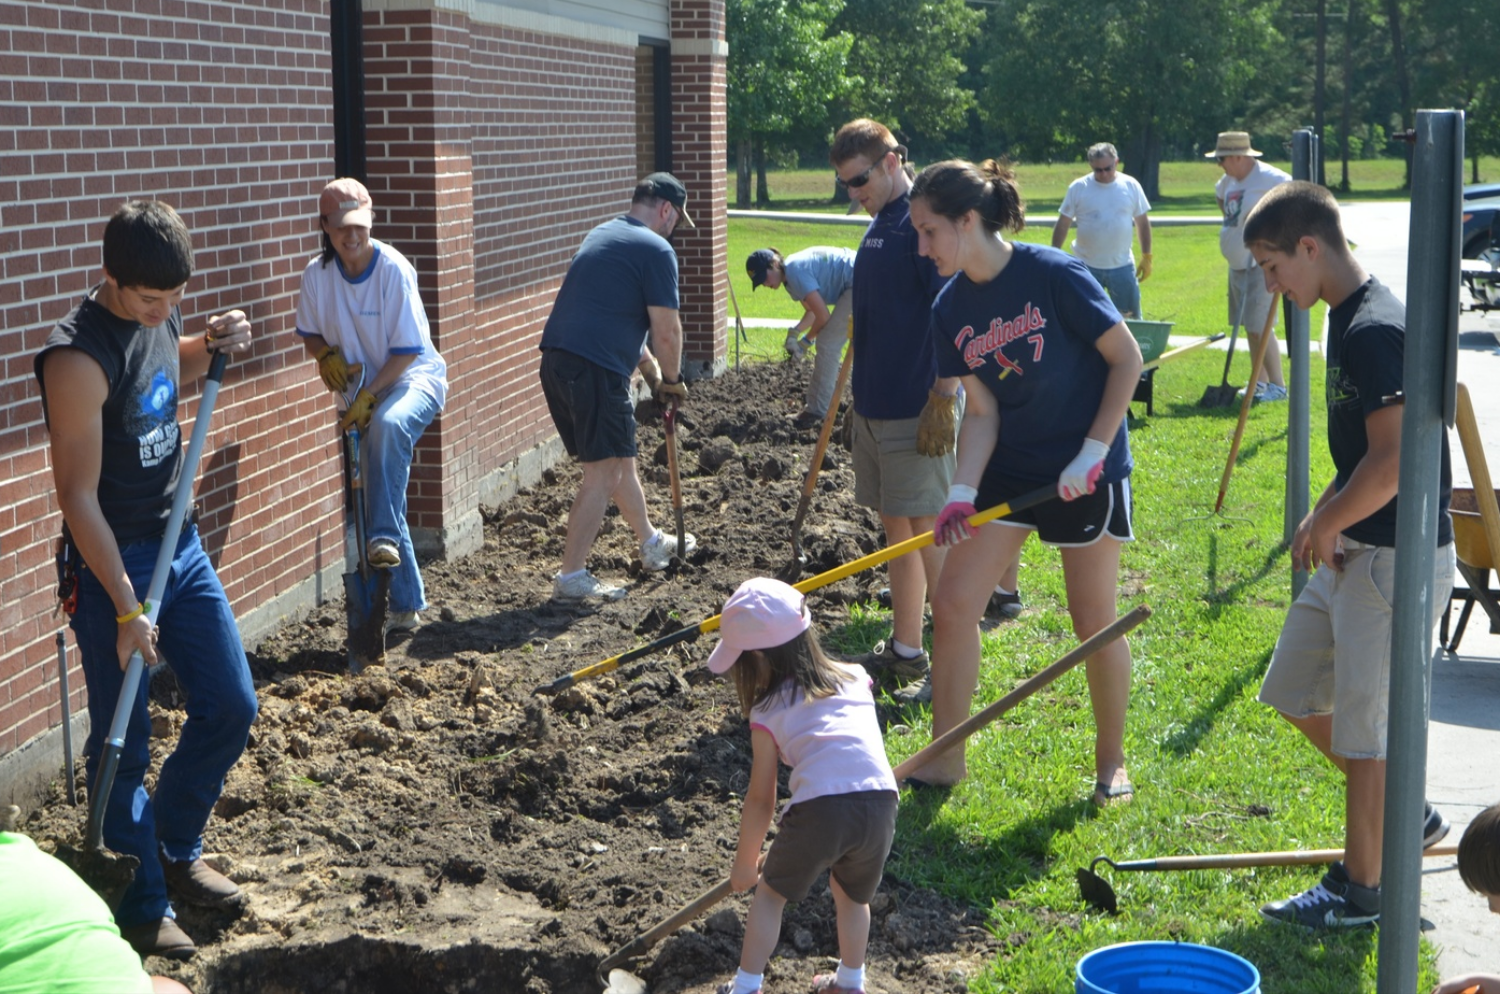 Service Projects   - Once a month, our families work together on service projects to spend time focused on the needs of others.